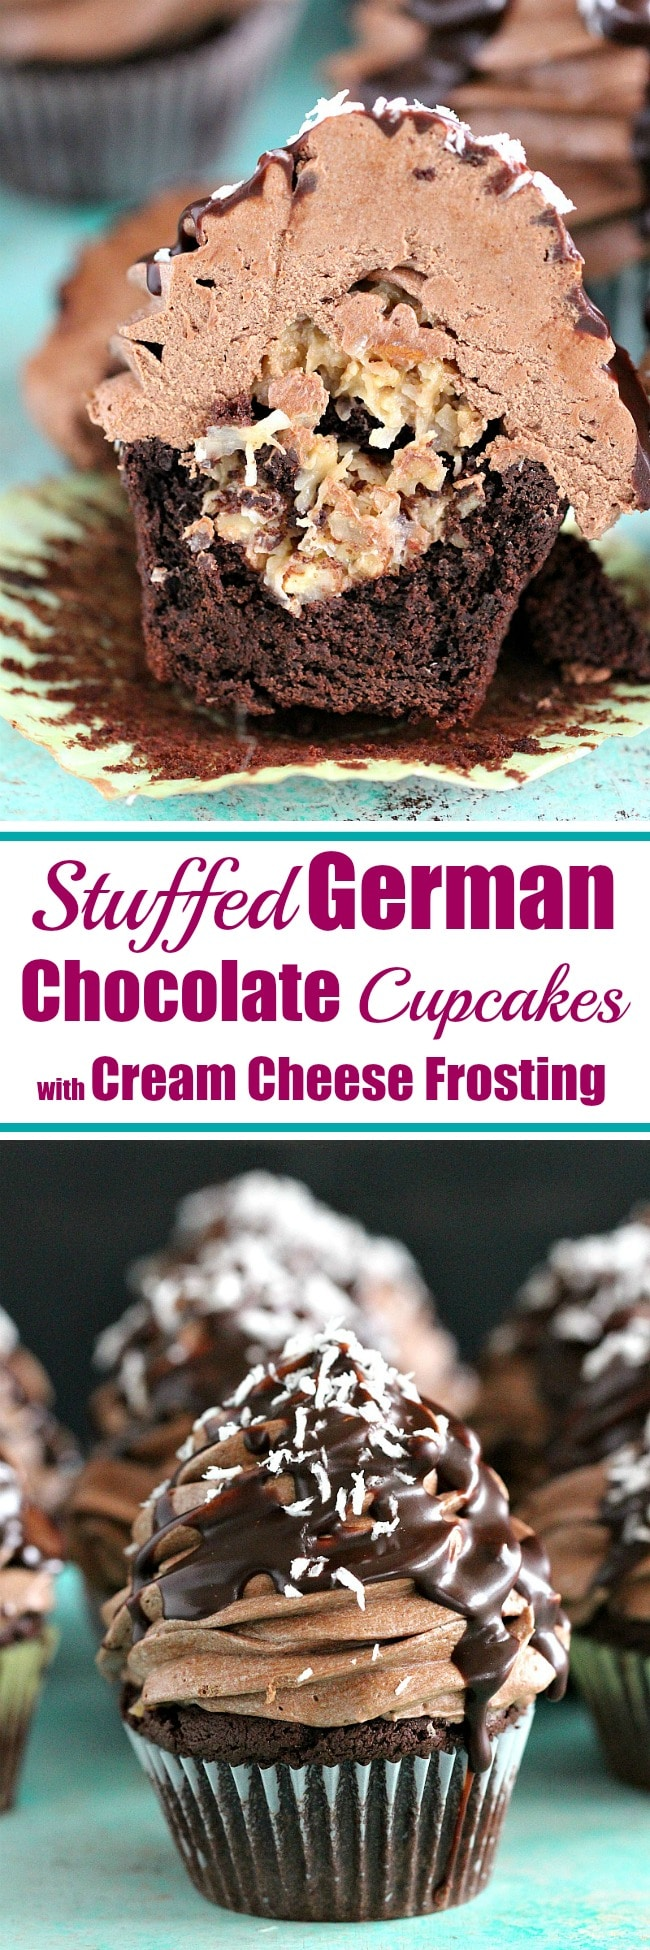 Best German Chocolate Cupcakes recipe, soft and chocolaty cupcakes are stuffed with a coconut-pecan filling and topped with chocolate cream cheese frosting.